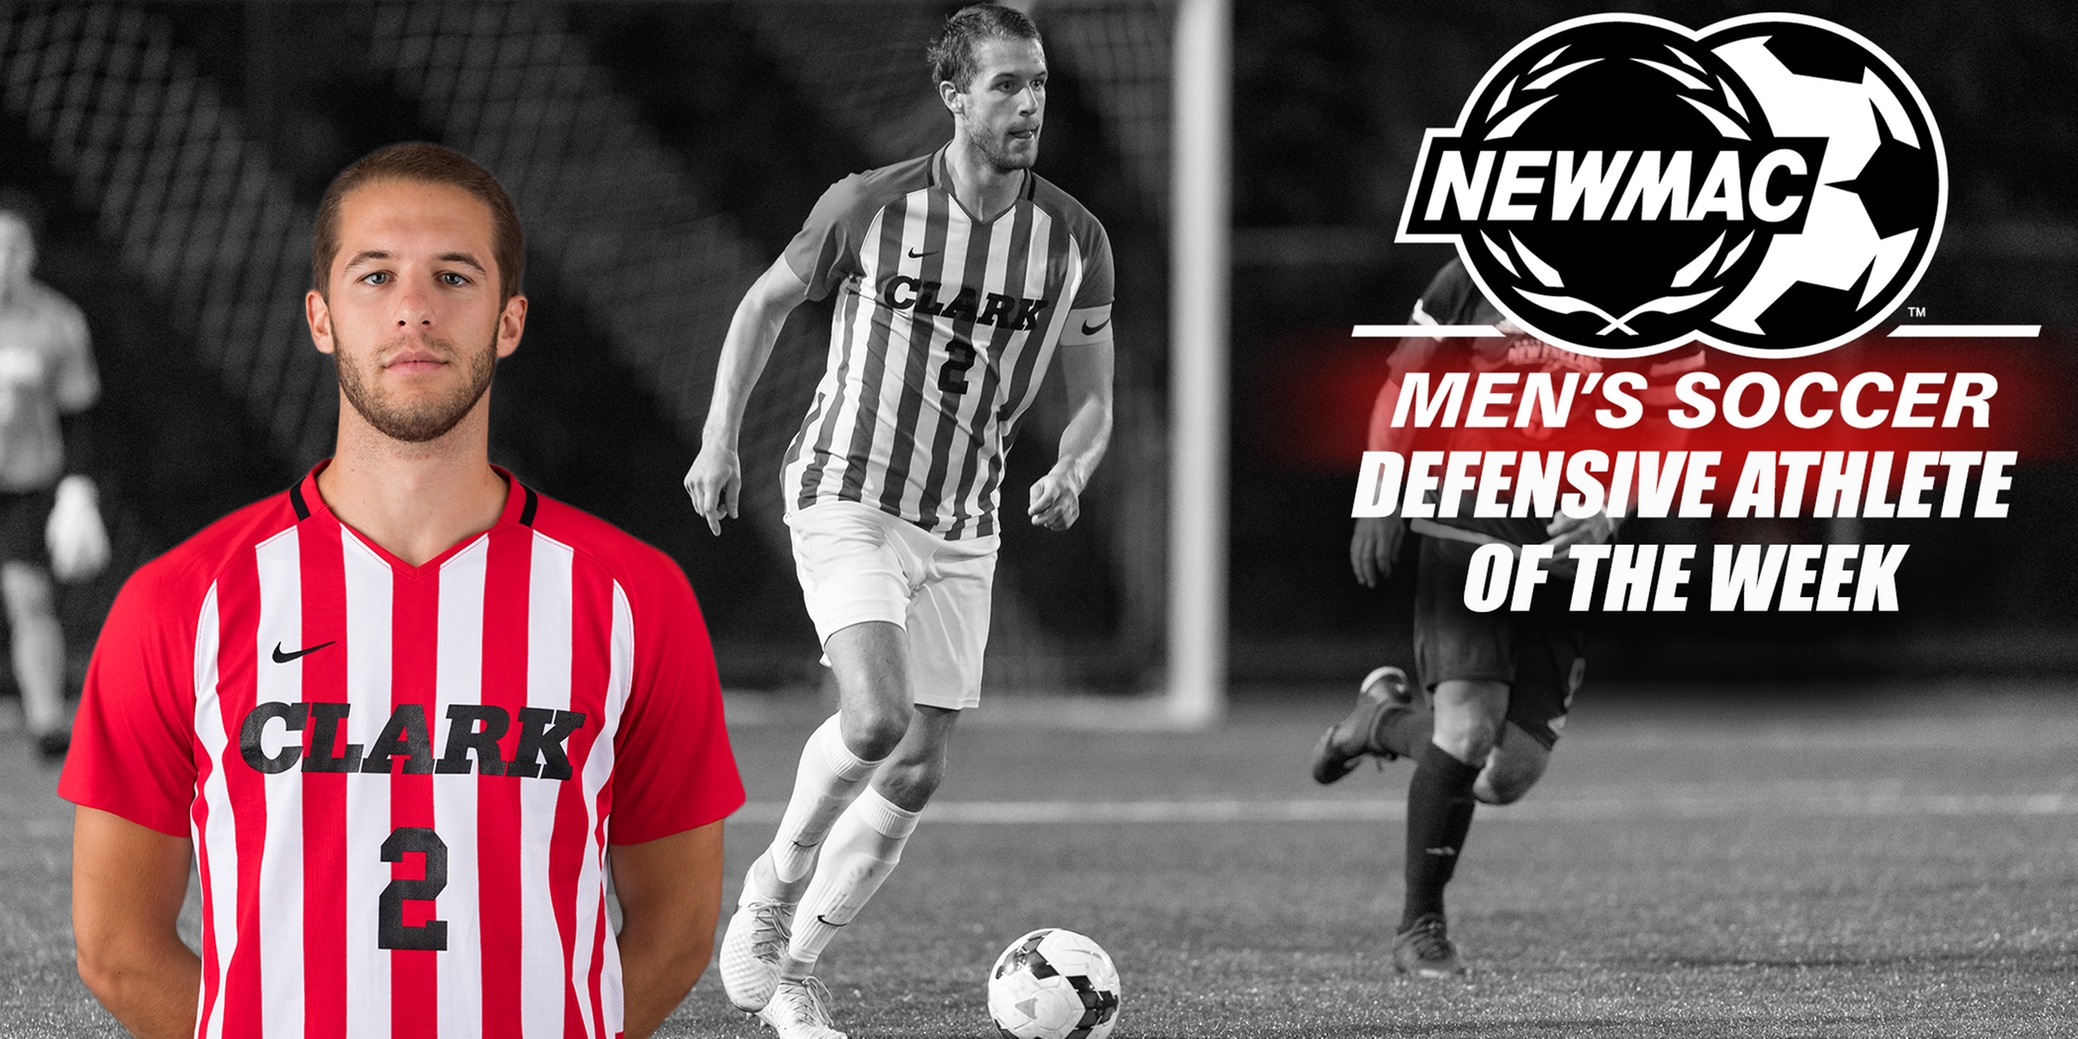 Feshbach-Meriney Named NEWMAC Defensive Athlete of the Week